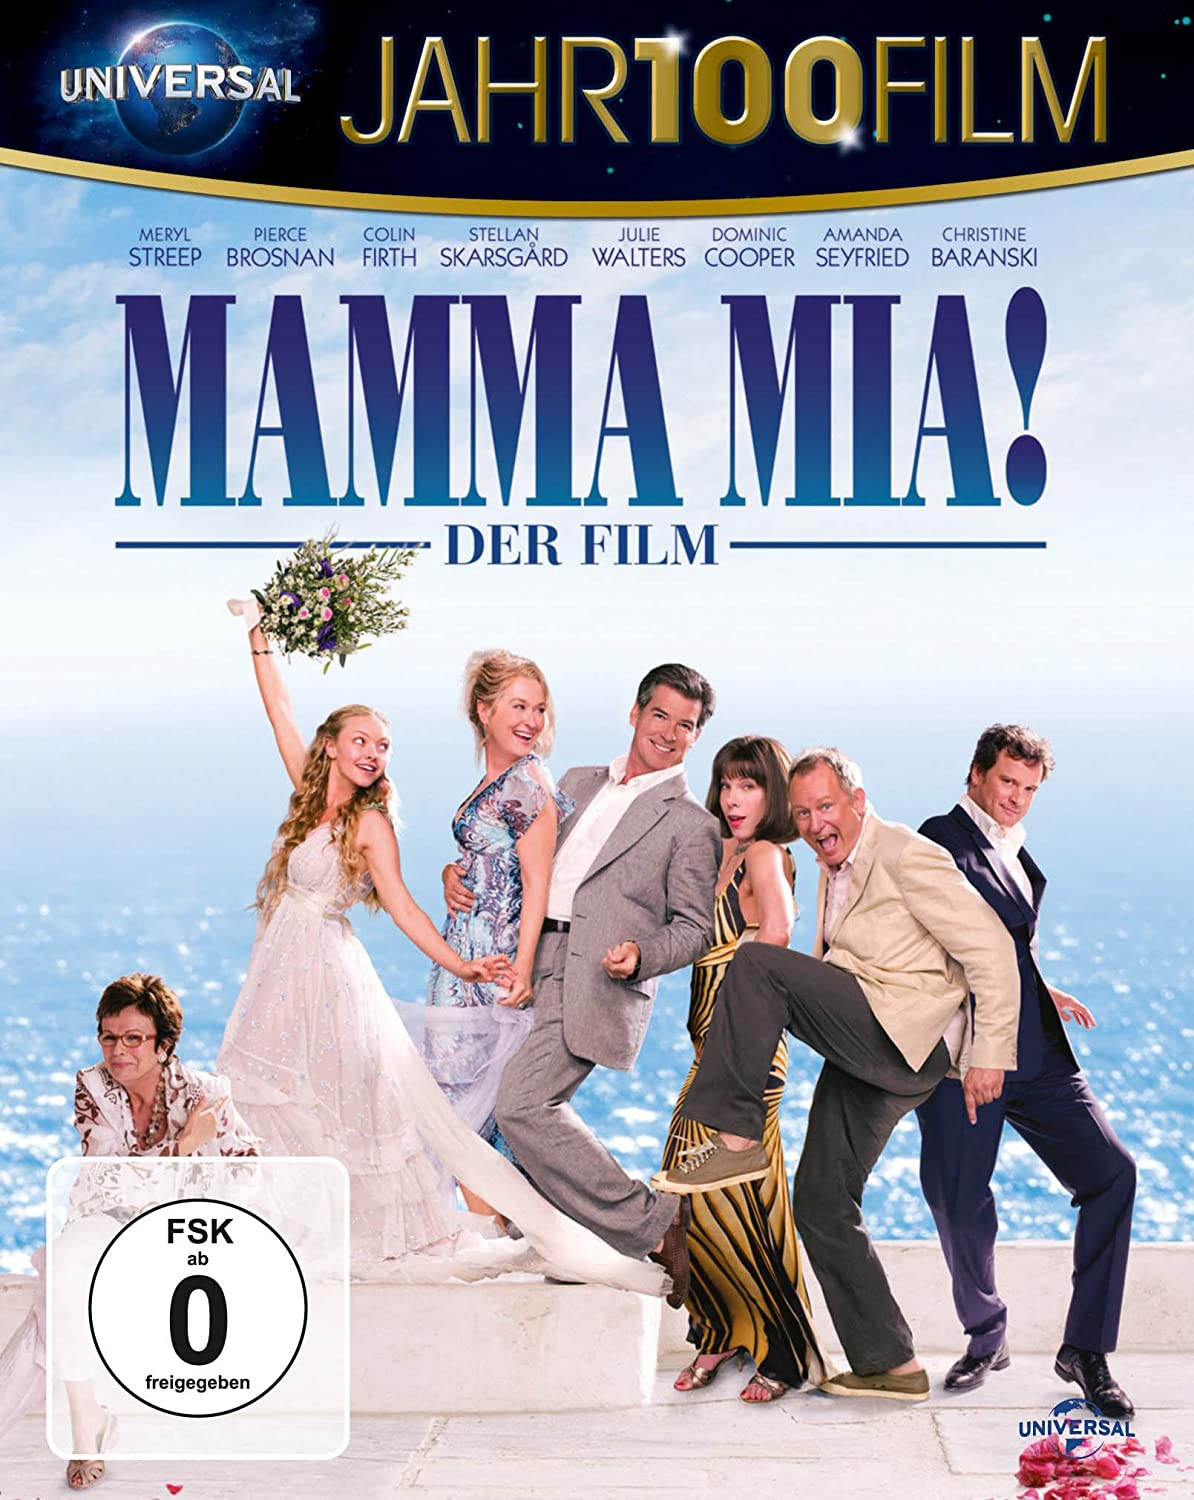 Mamma Mia! - Der Film - Jahr100Film Alemania Blu-ray: Amazon.es ...